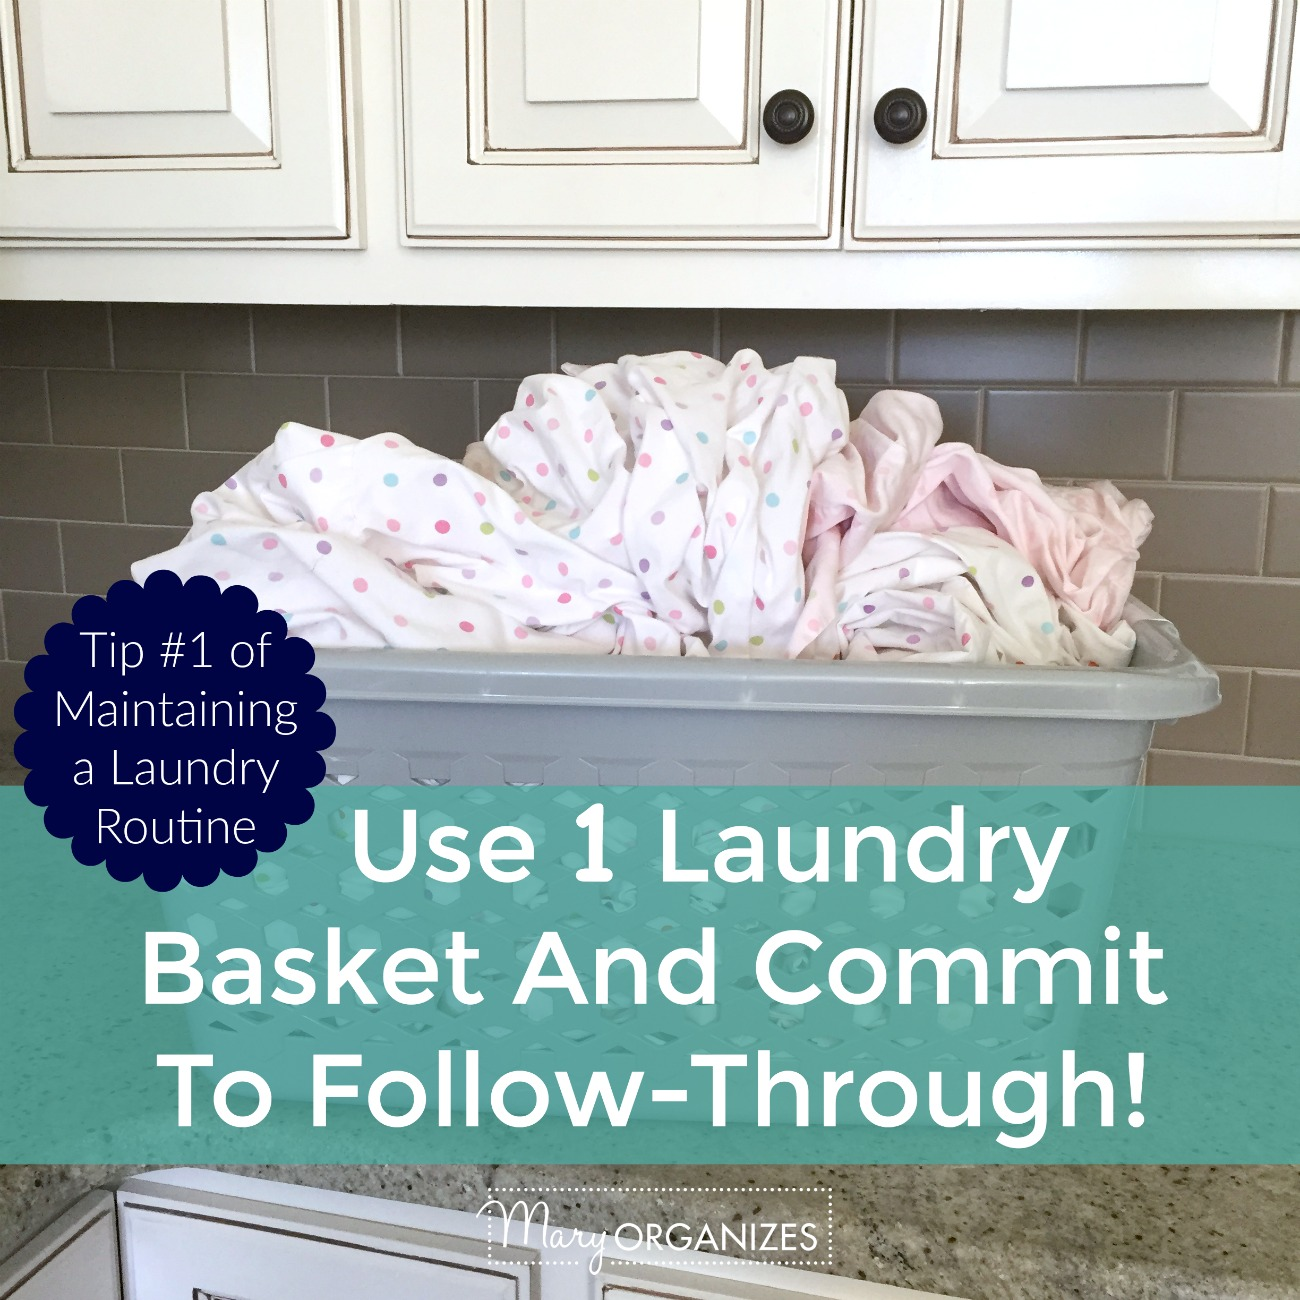 Tip 1 - Use 1 Laundry Basket and Commit to Follow-Through